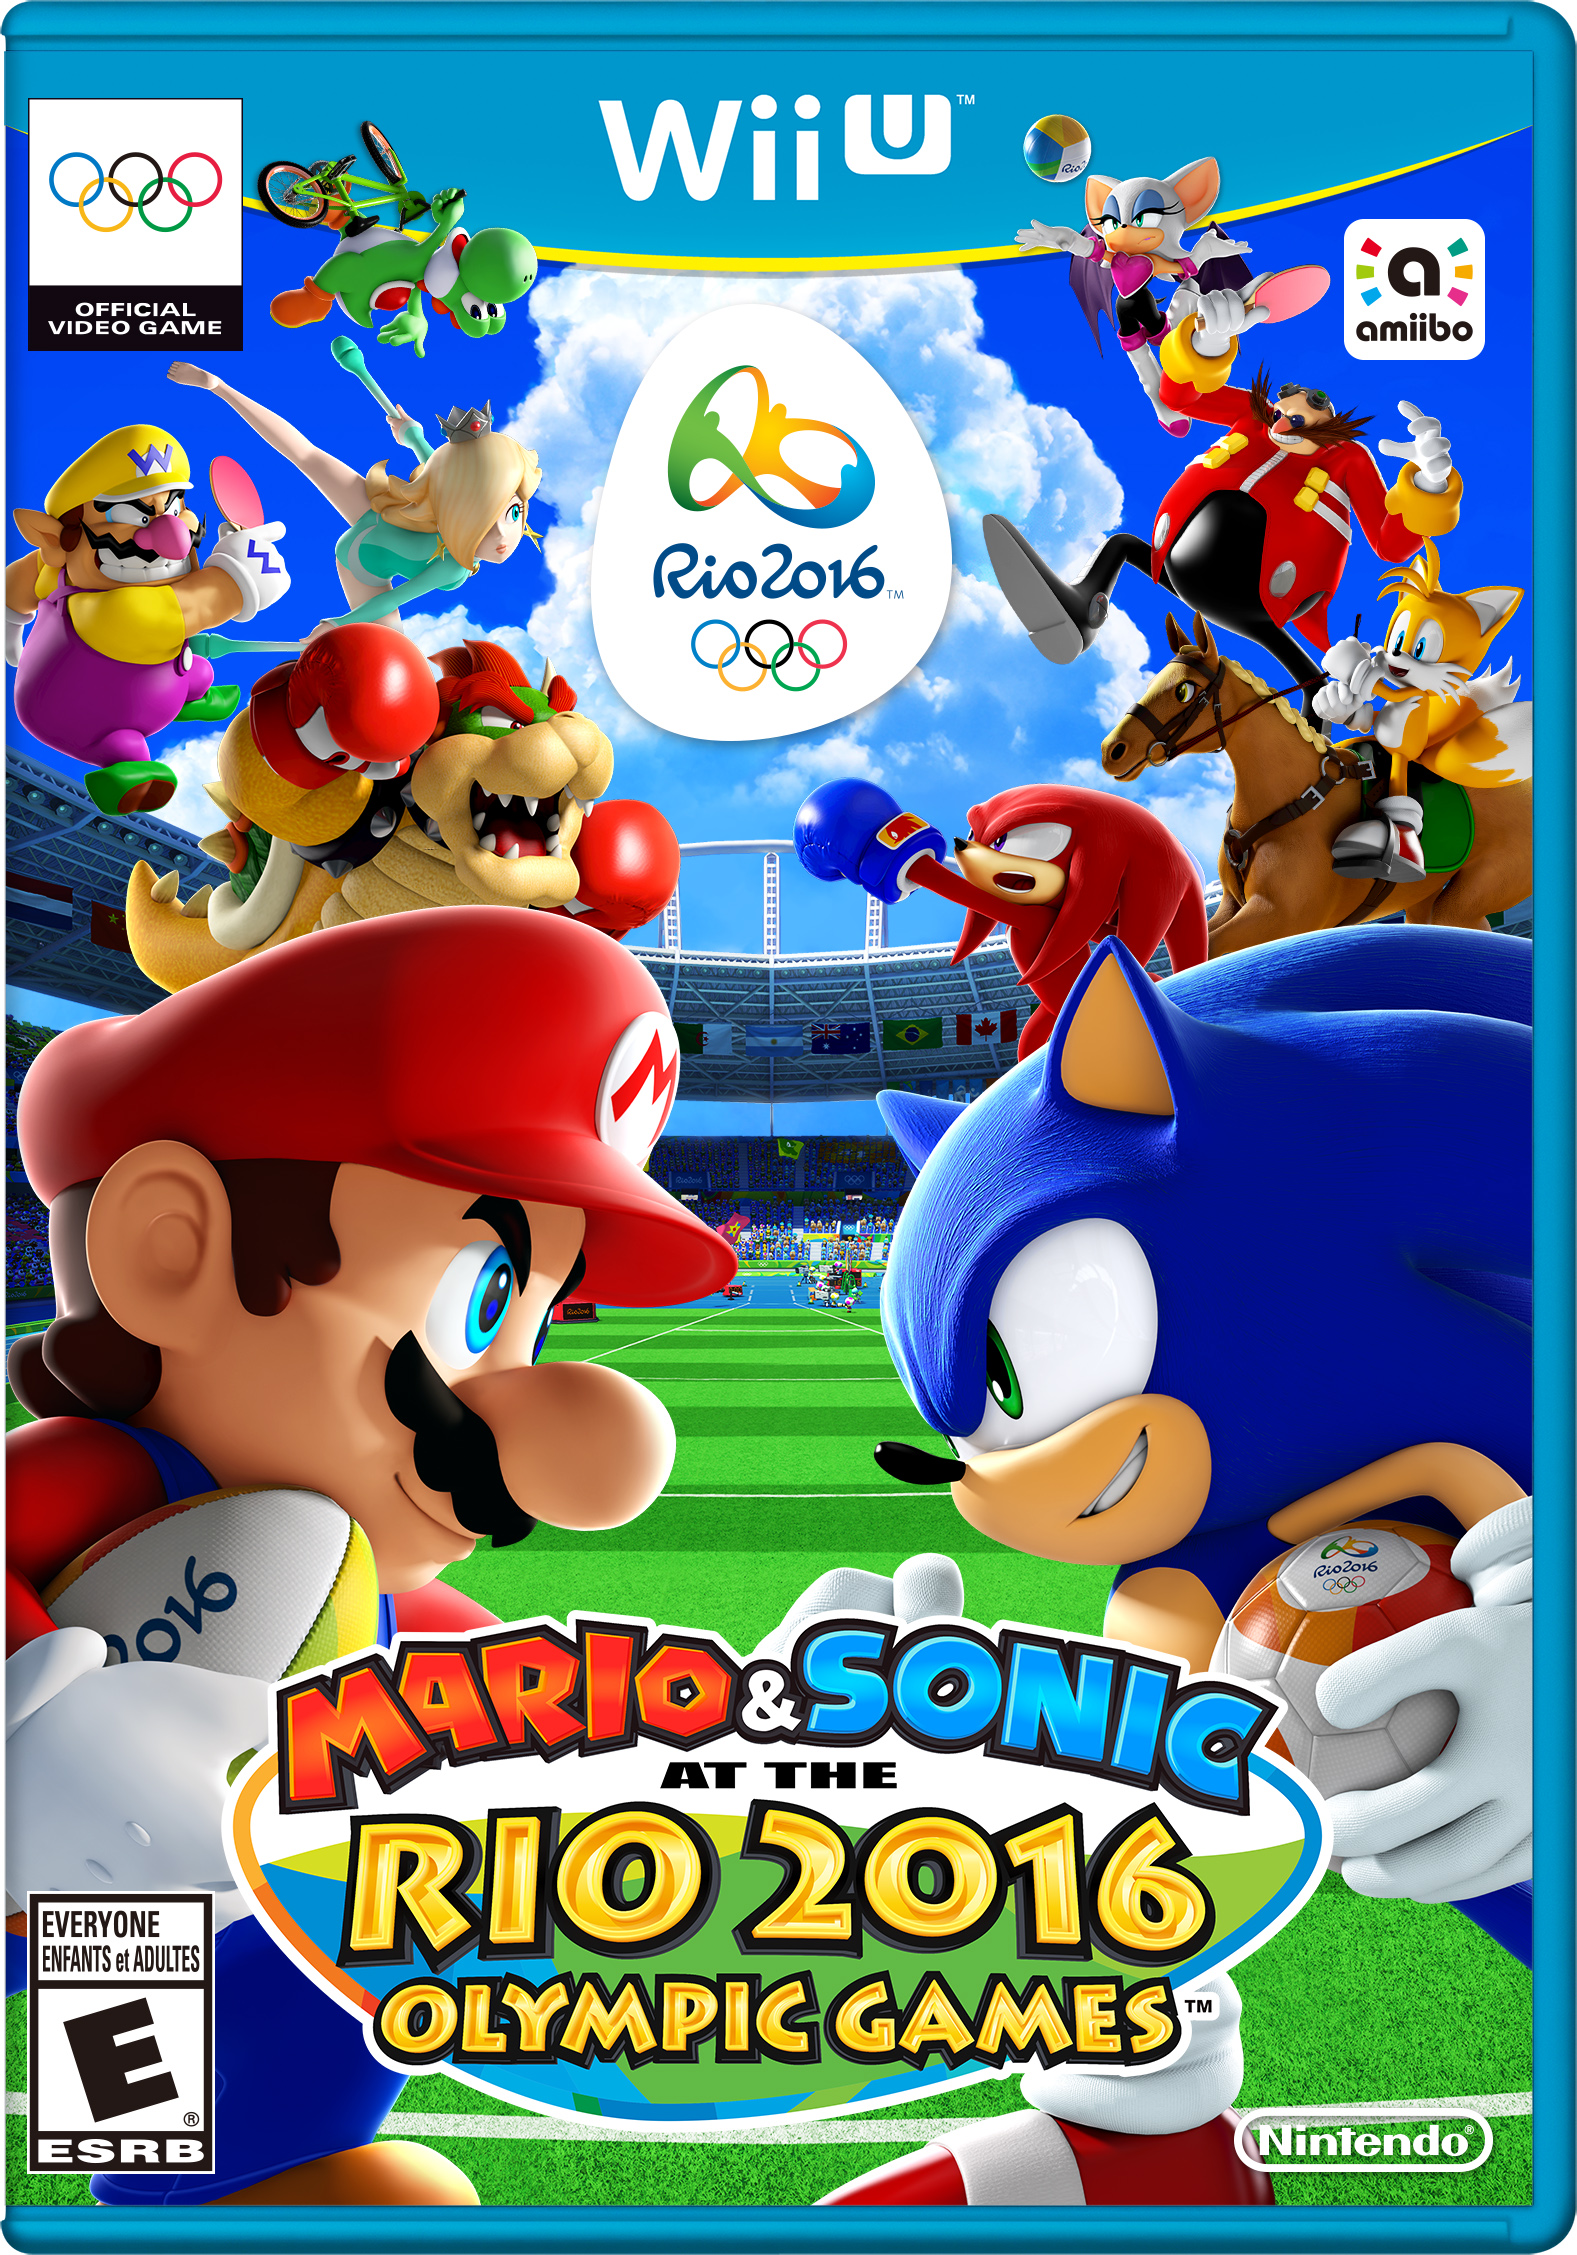 mario and sonic at the 2016 rio olympic games hits the 3ds this month wii u in june sonic retro. Black Bedroom Furniture Sets. Home Design Ideas